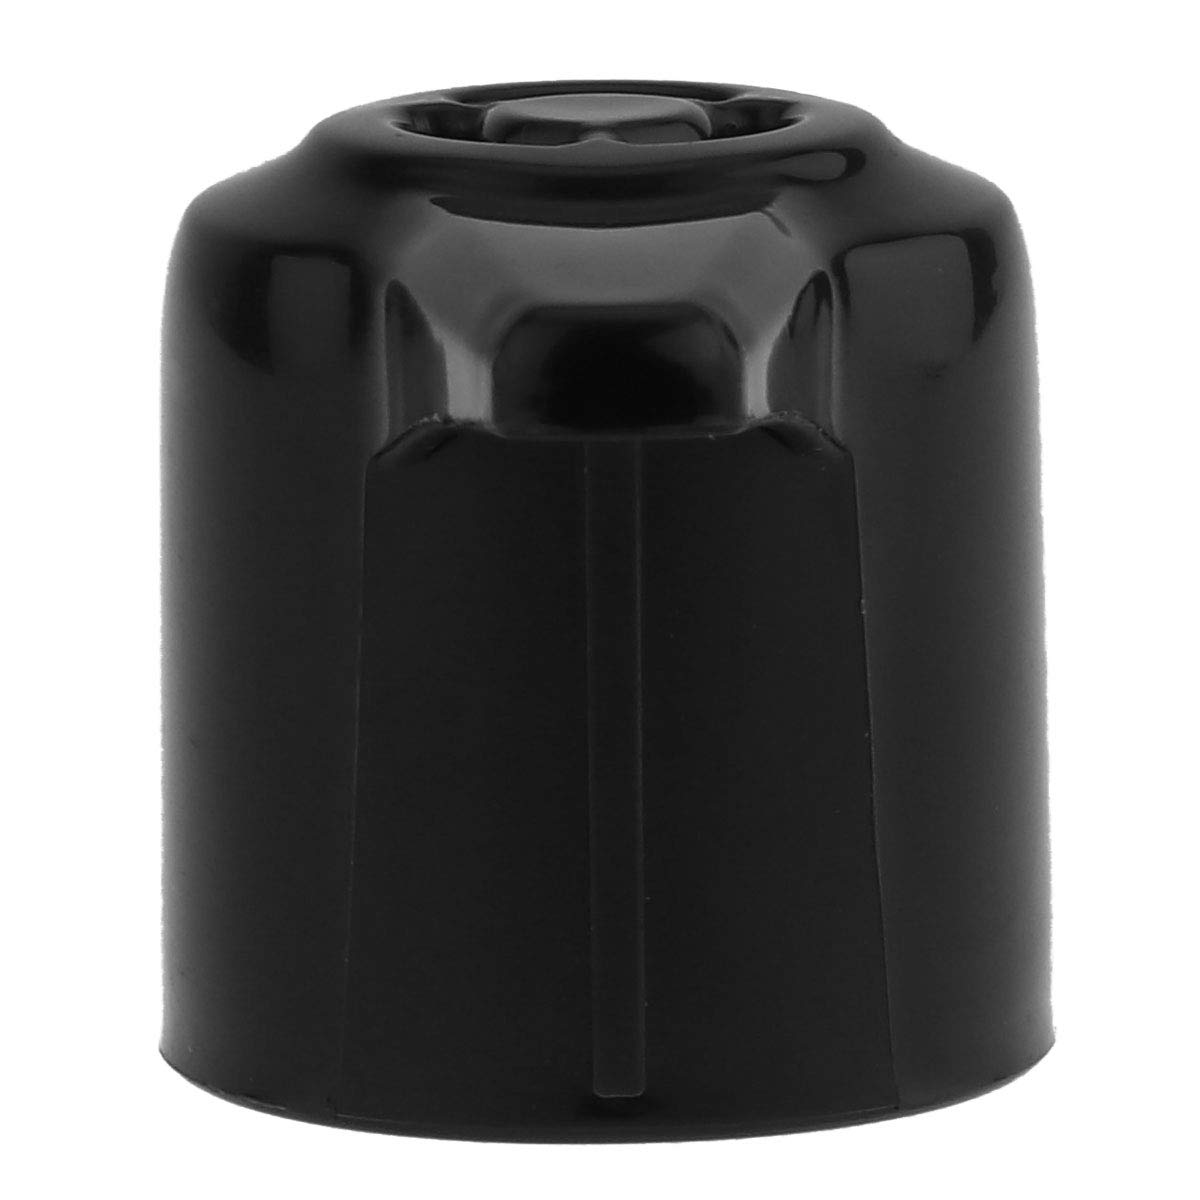 Freebily Steam Release Valve for Instant Pot Duo Mini 3 Qt Duo Plus Mini 3 Qt DUO60 6 Qt and DUO80 8 Qt Programmable Pressure Cooker Black One Size by Freebily (Image #5)